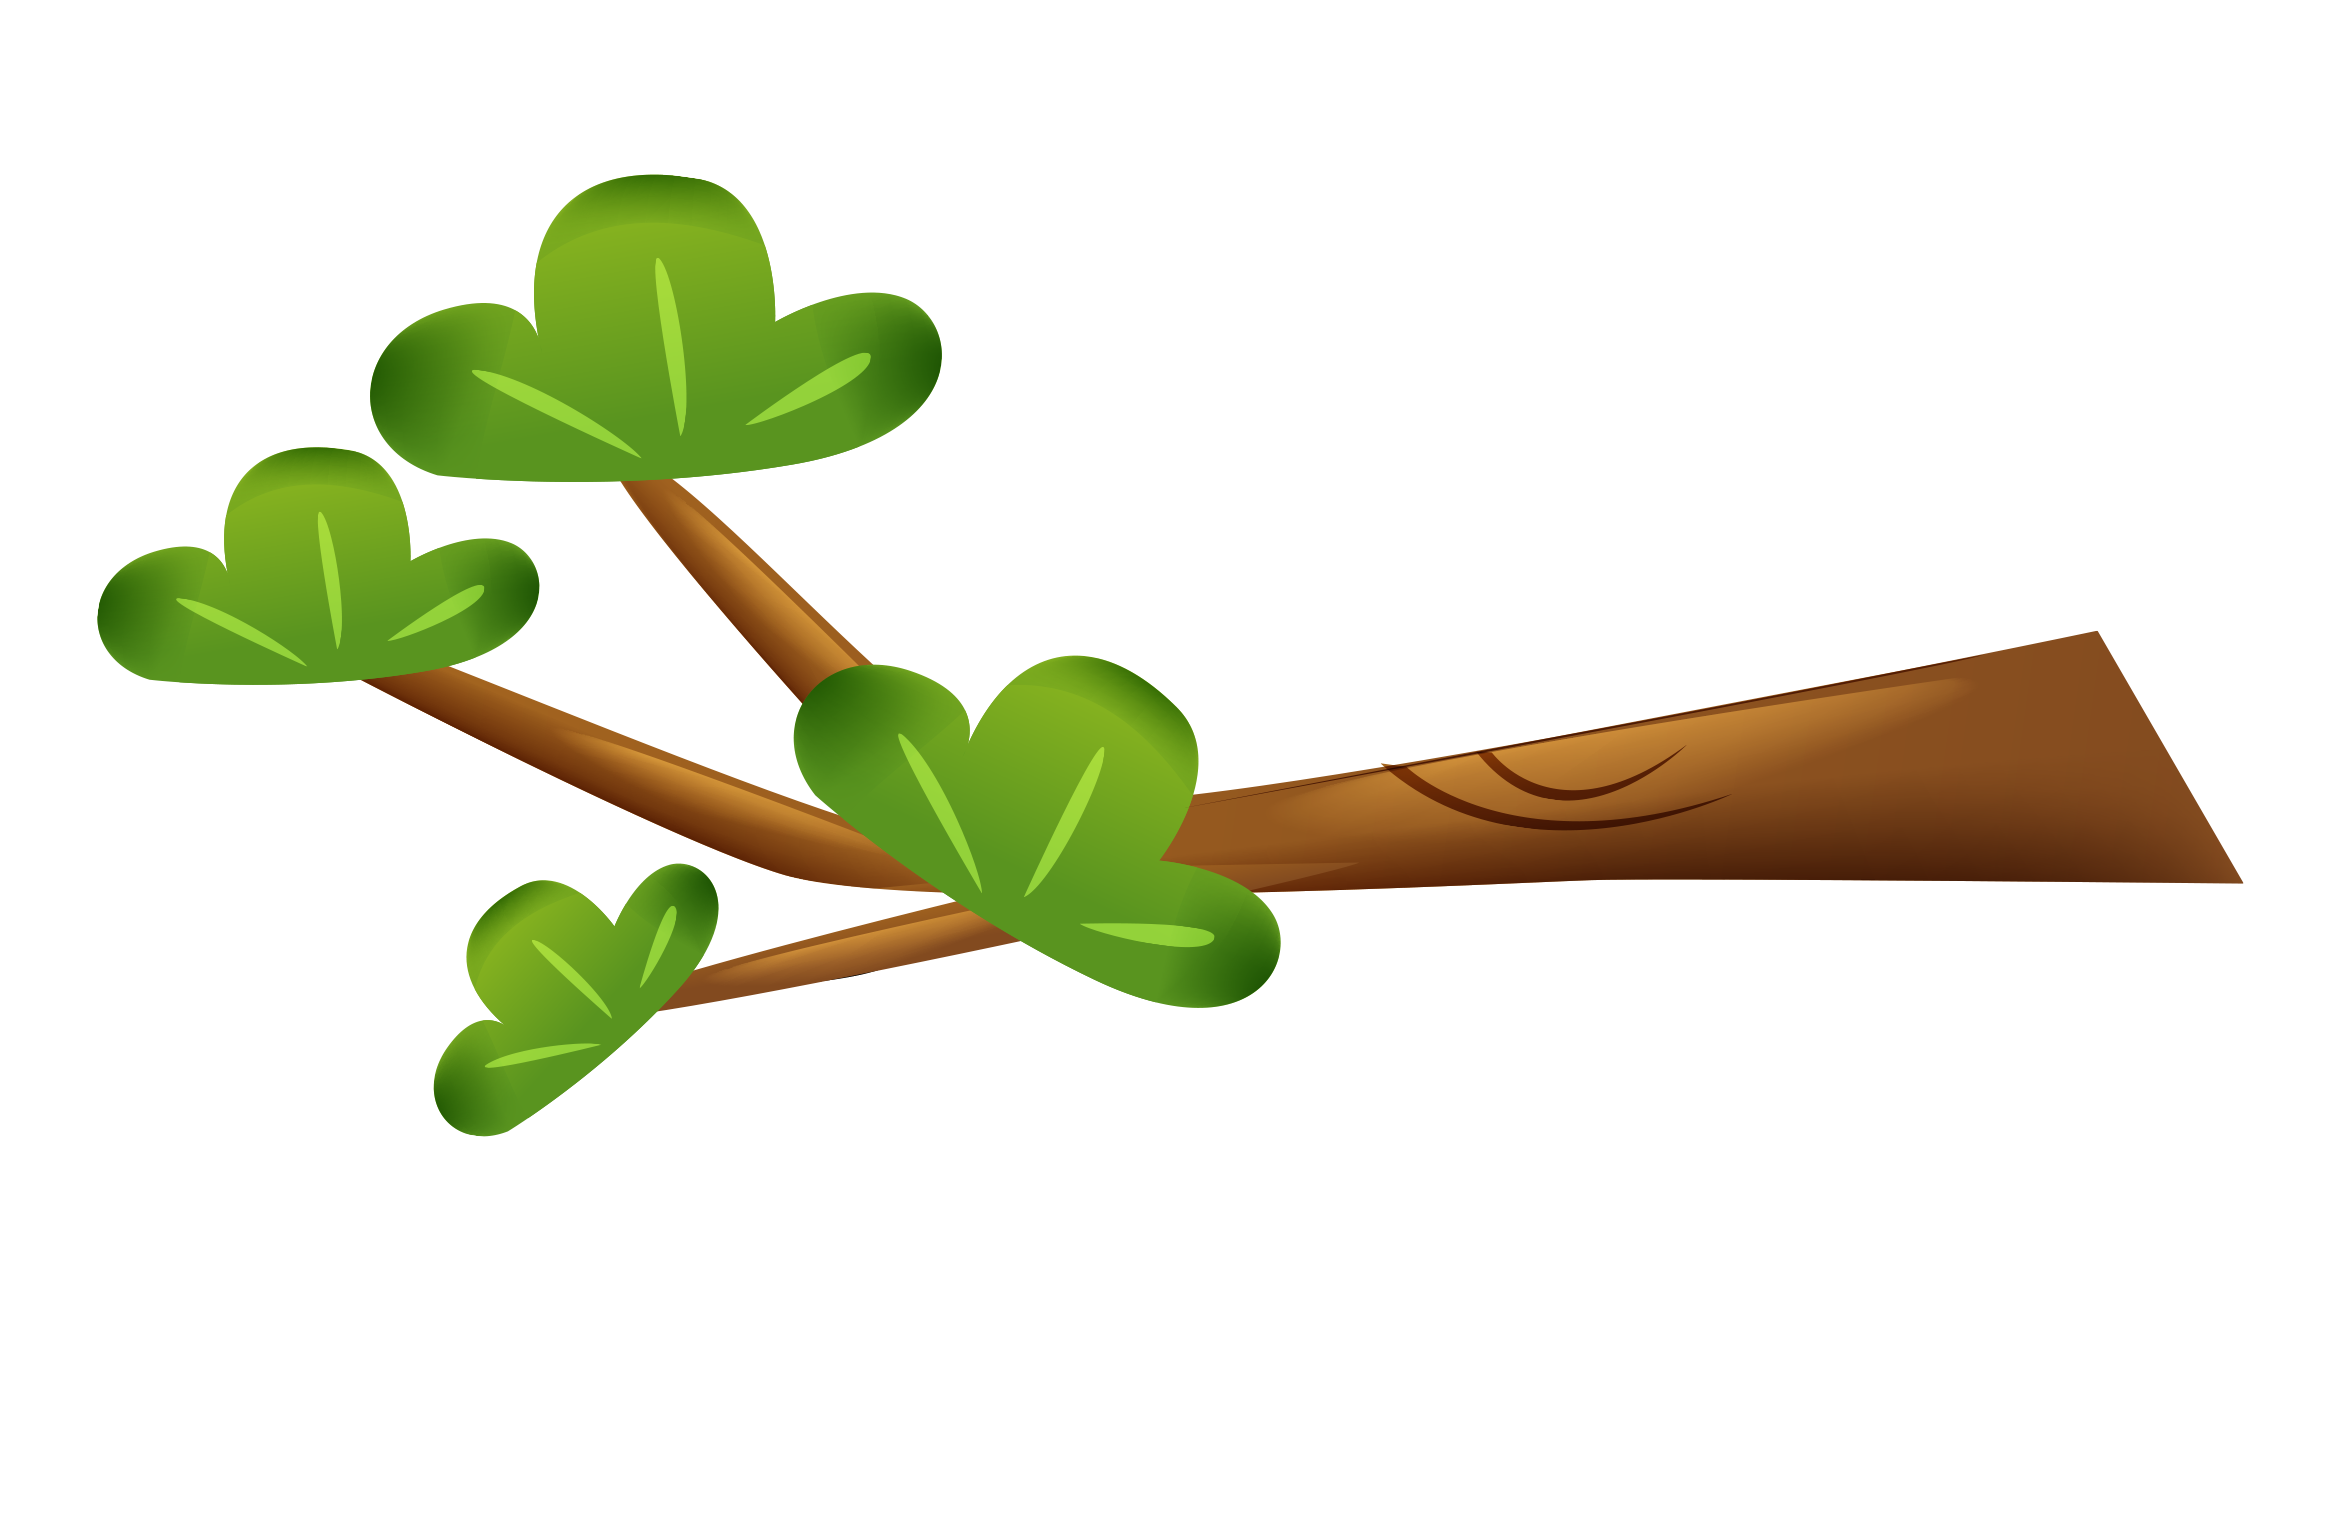 Cartoon tree branch png. Leaf animation branches green